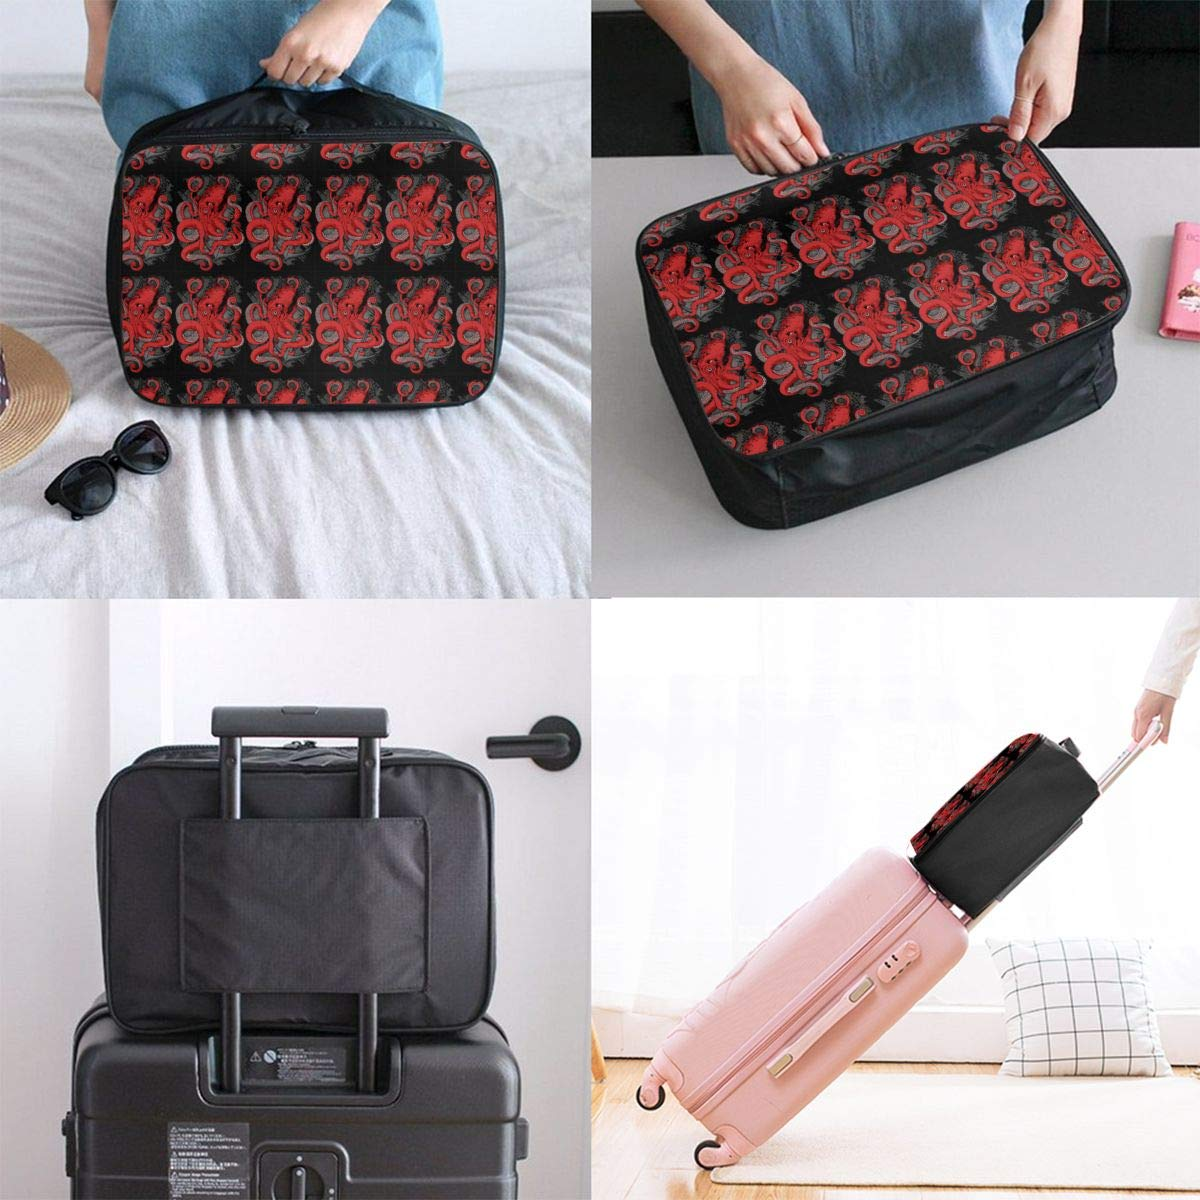 Portable Duffle Bag for Travel Gym Sports Lightweight Luggage Duffel Tote Bag for Men Women Red Panda